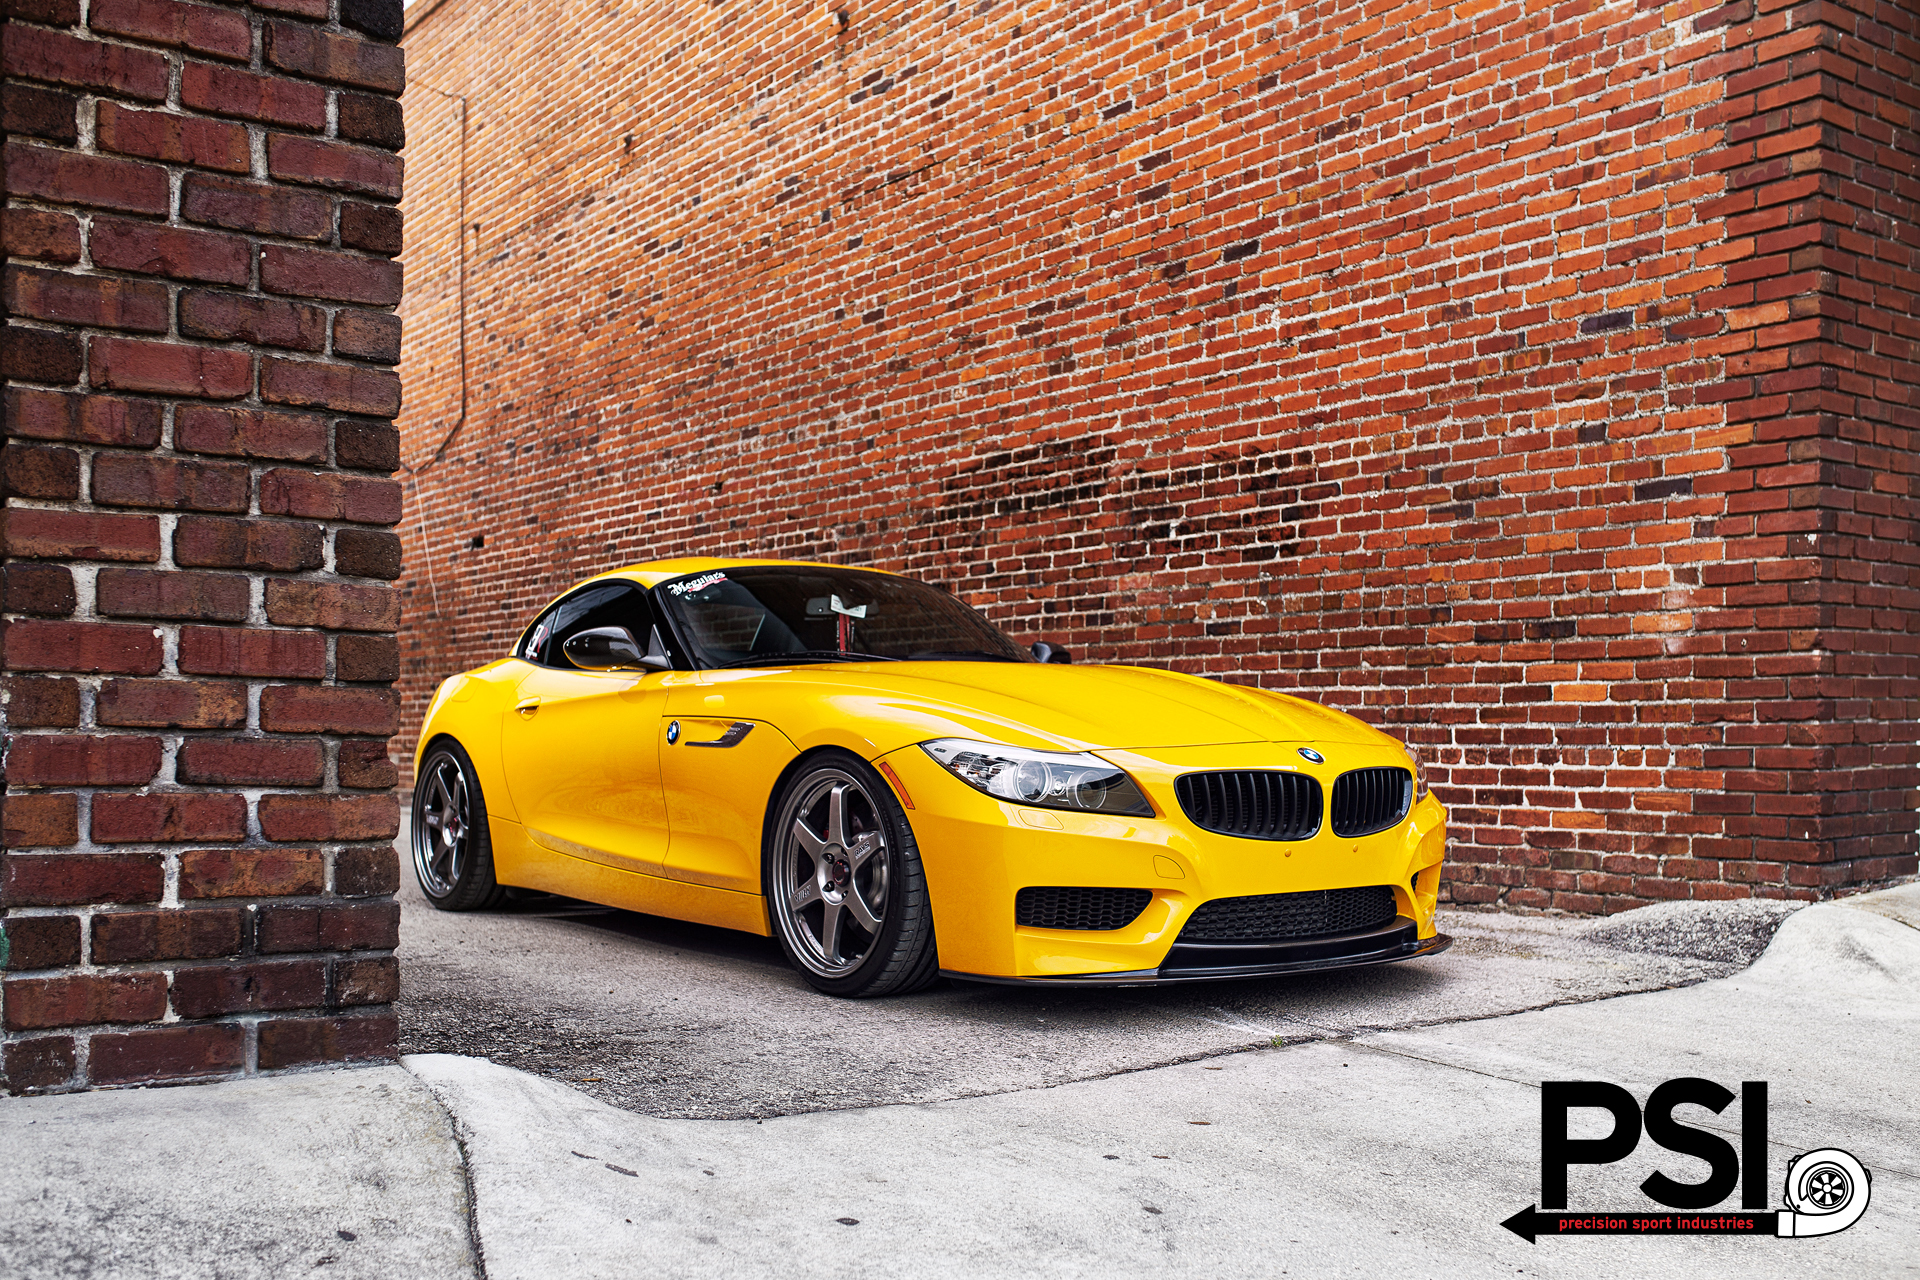 atacama yellow bmw e89 z4 by psi autoevolution. Black Bedroom Furniture Sets. Home Design Ideas